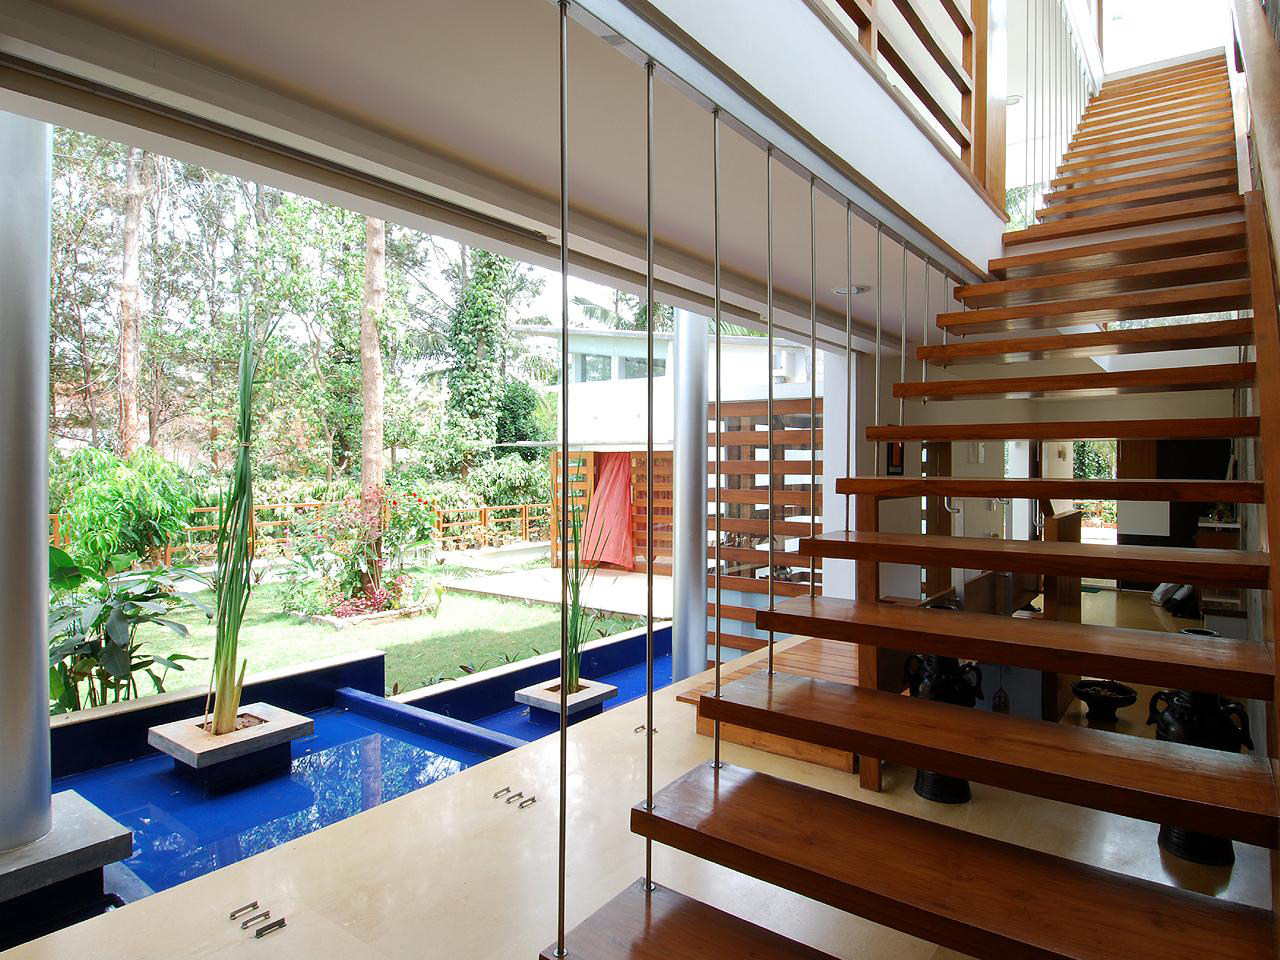 Modern open concept house in bangalore idesignarch interior design architecture interior for House design concept